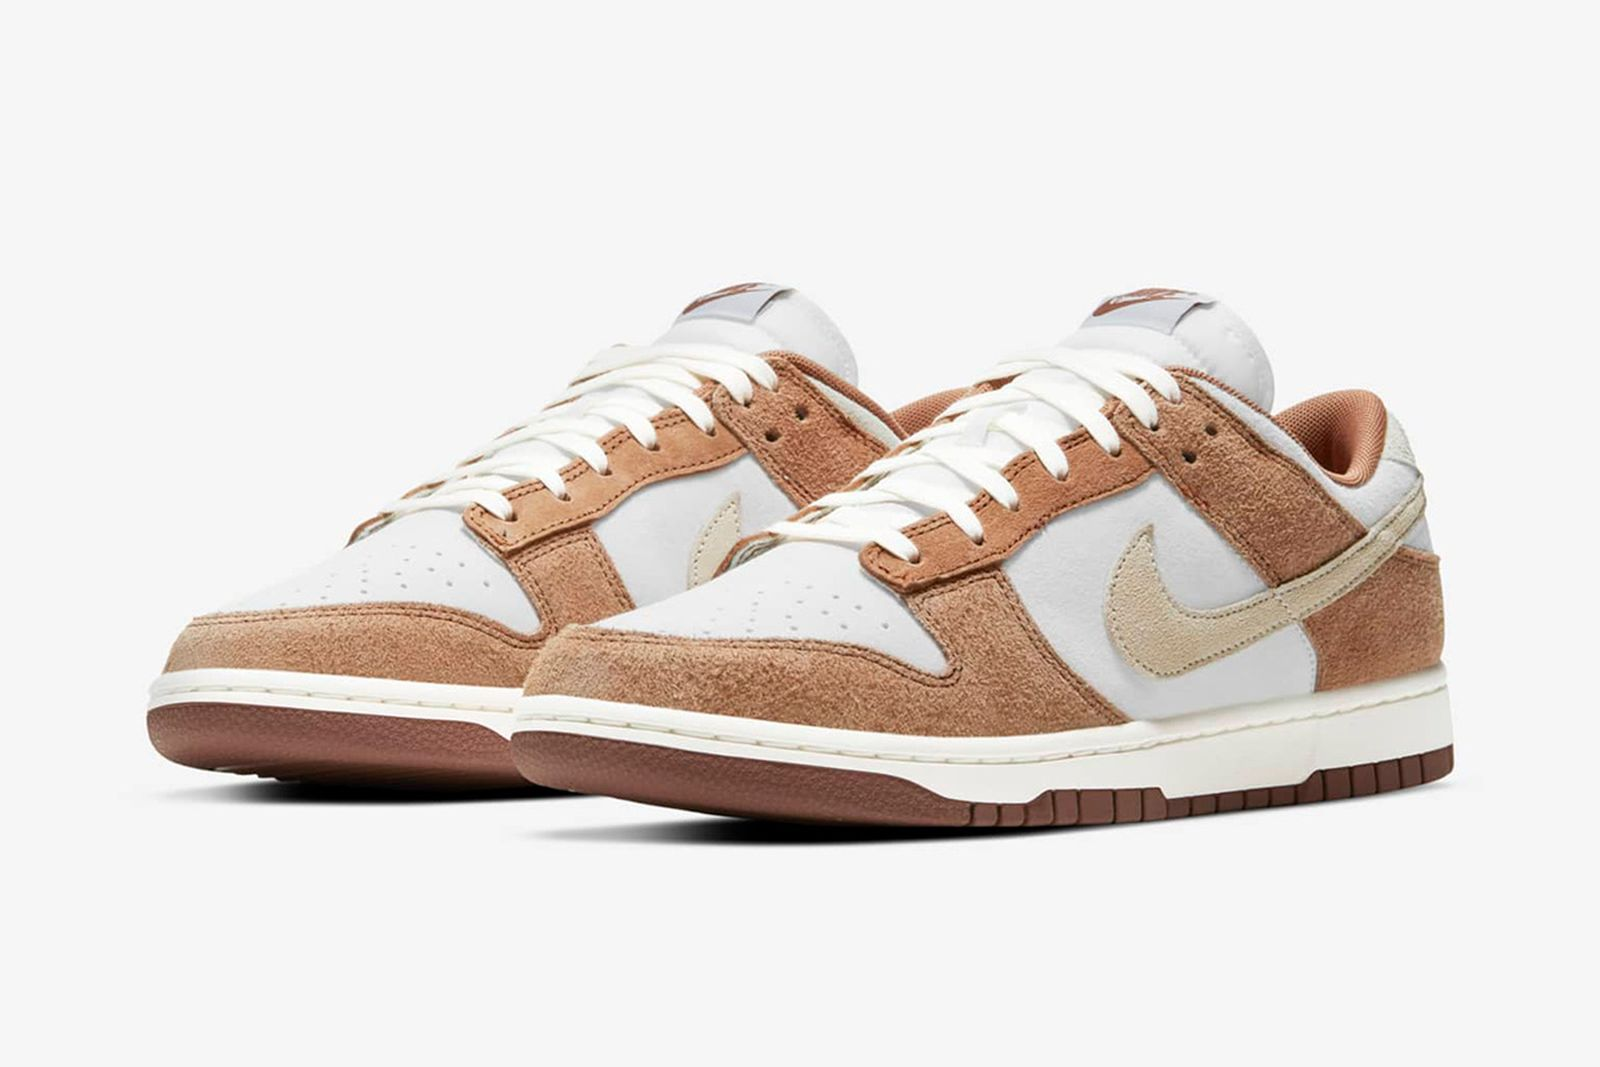 nike-dunk-low-medium-curry-release-info-03